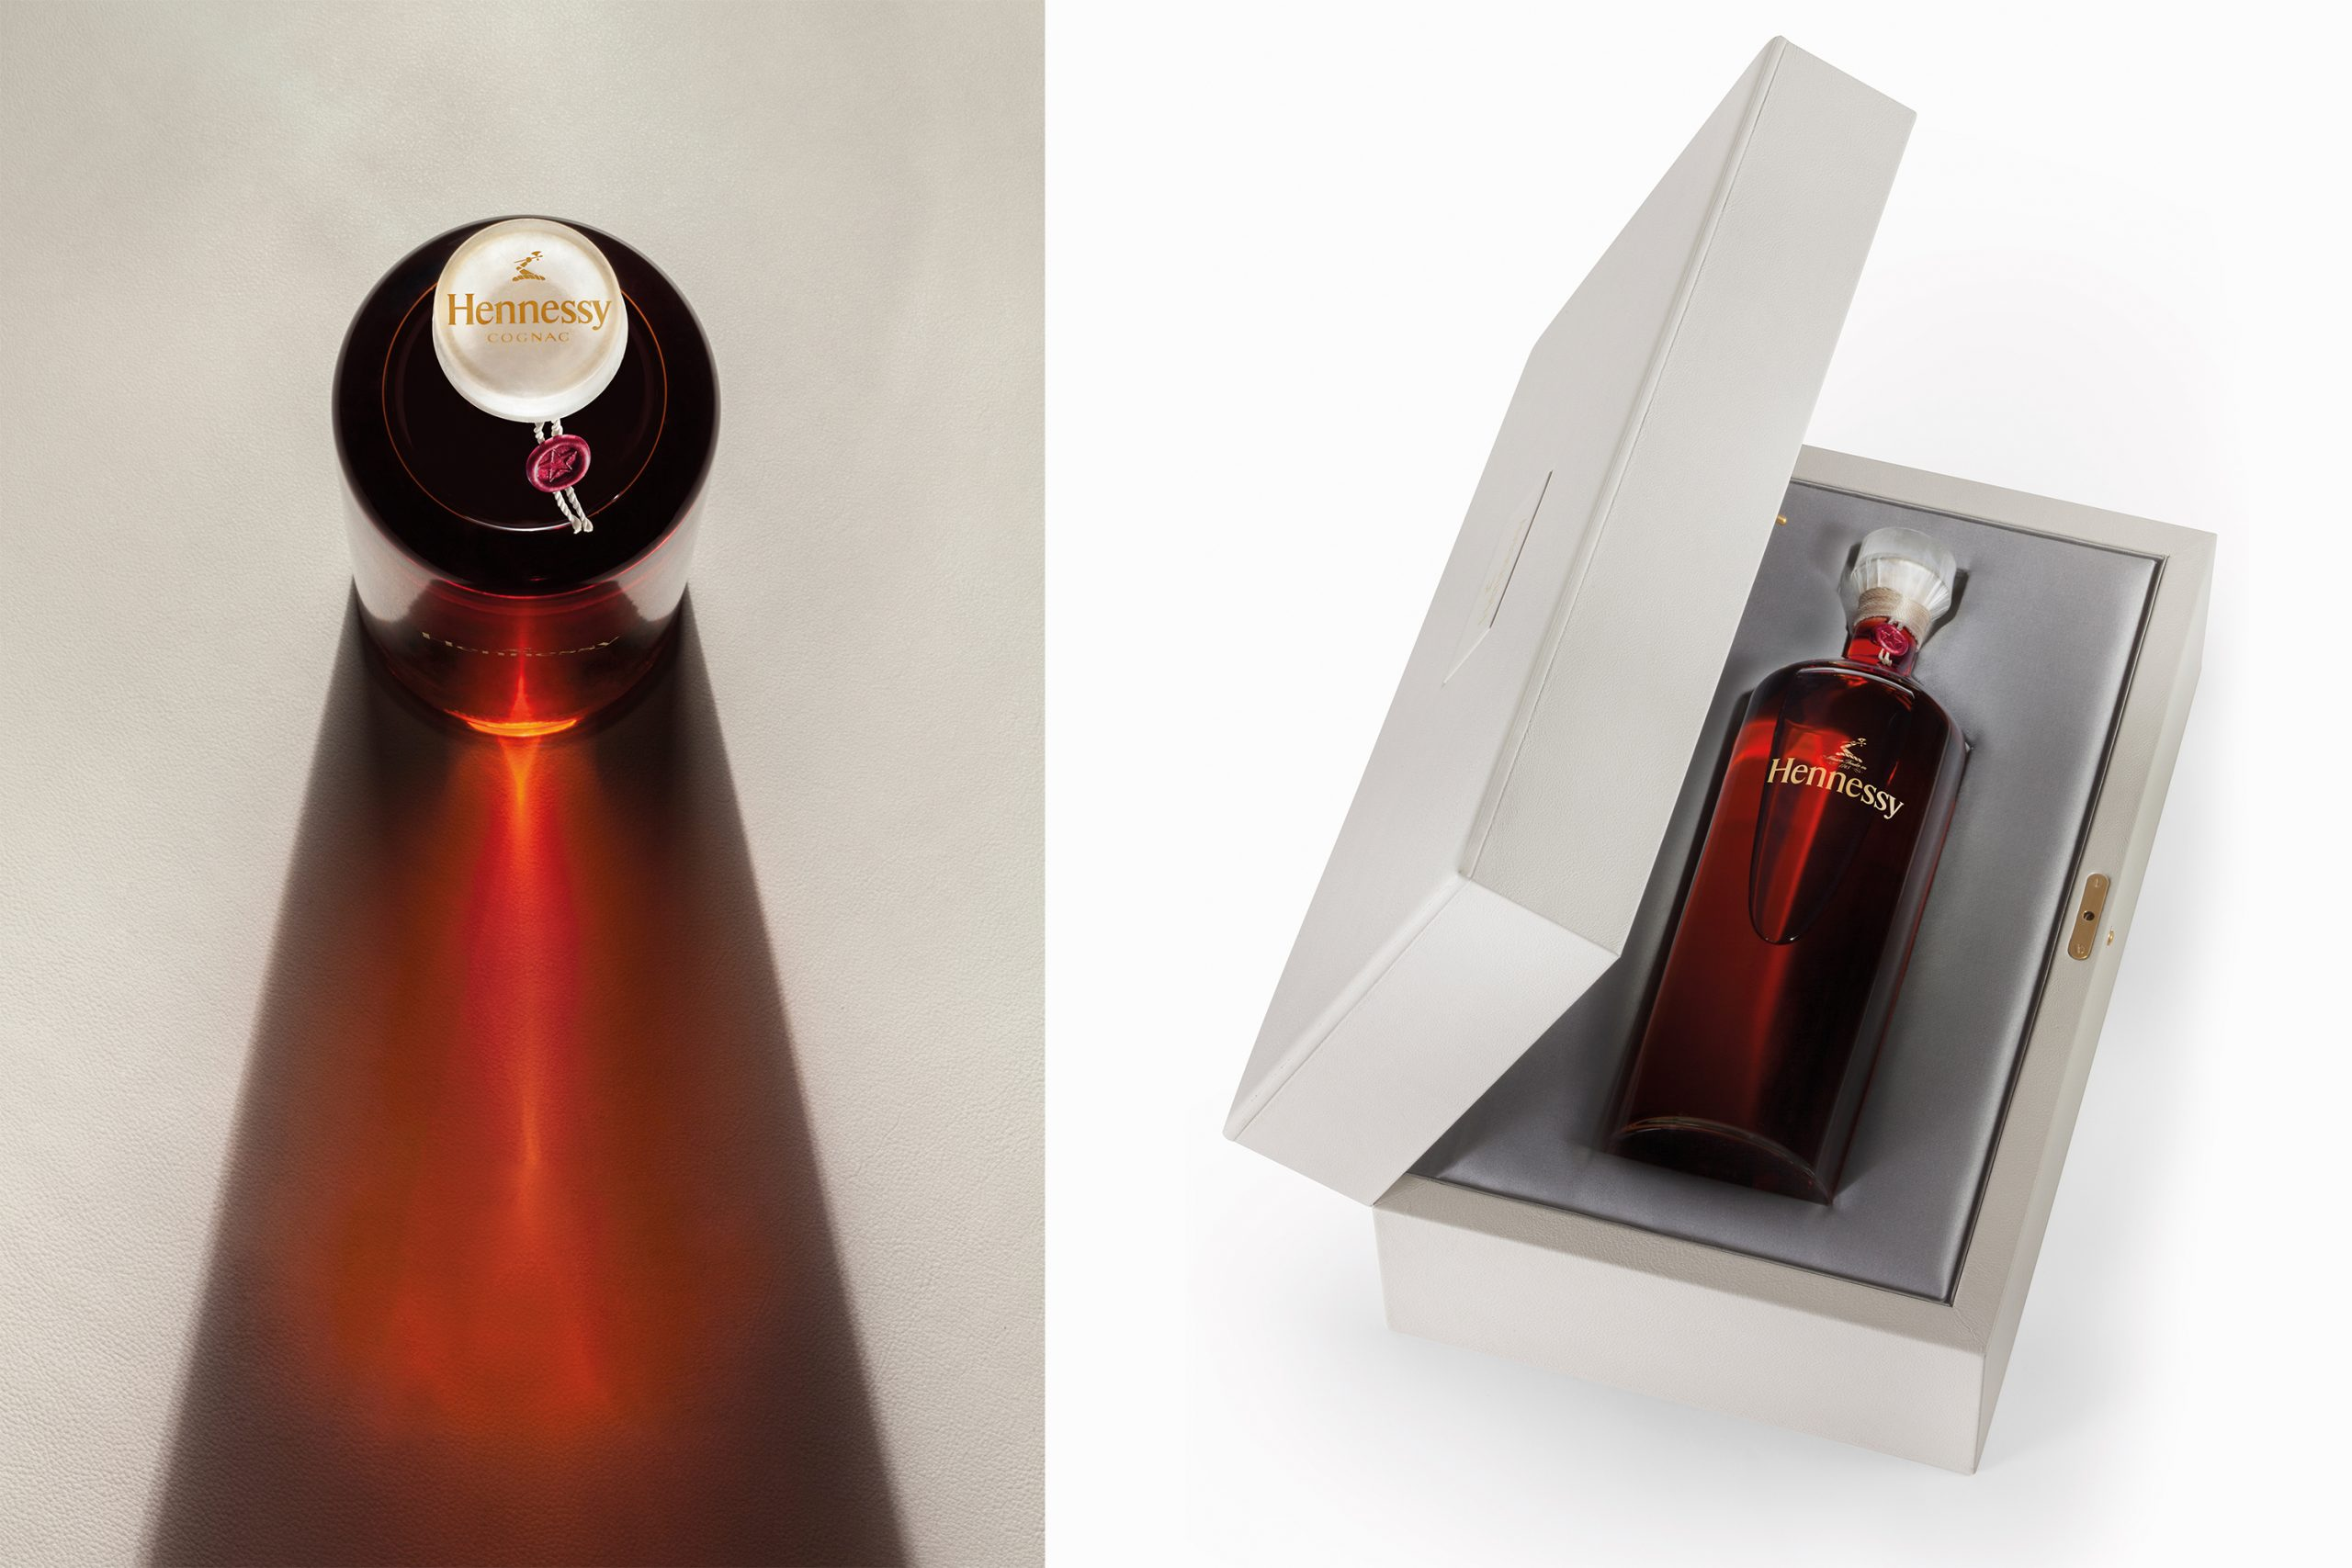 reflet et coffret Hennessy edition particuliere